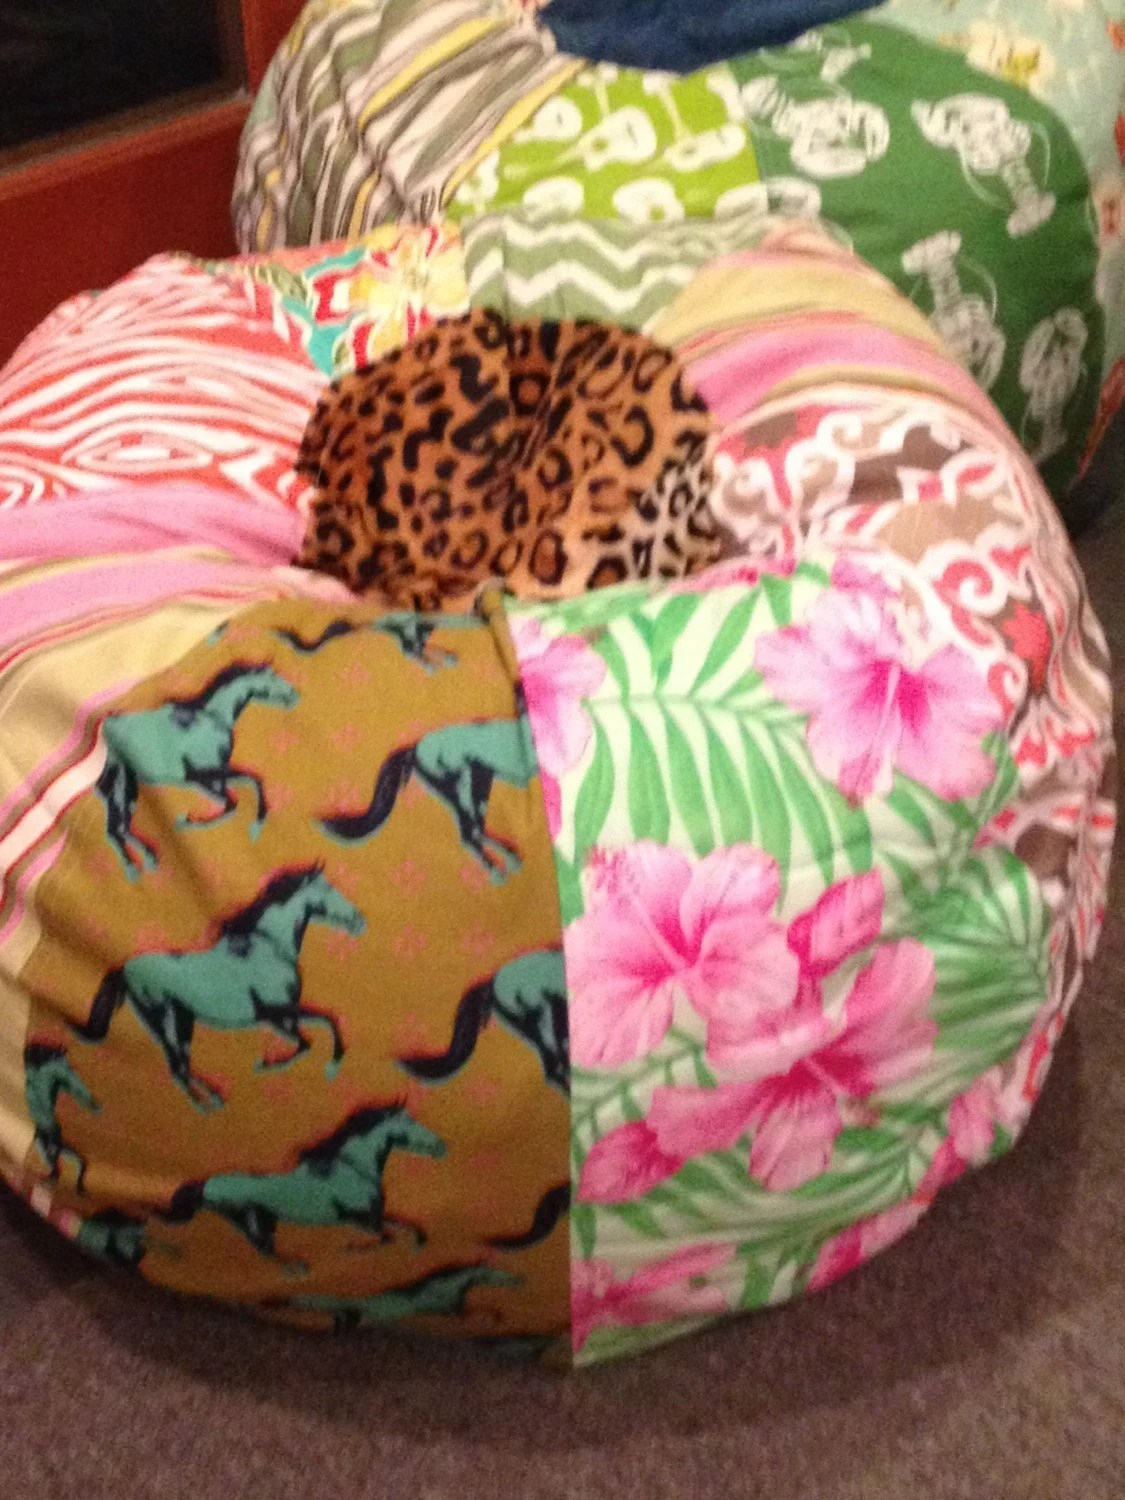 zebra print bean bag chair pottery barn teen desk funky horse and floral patterns cowgirl with